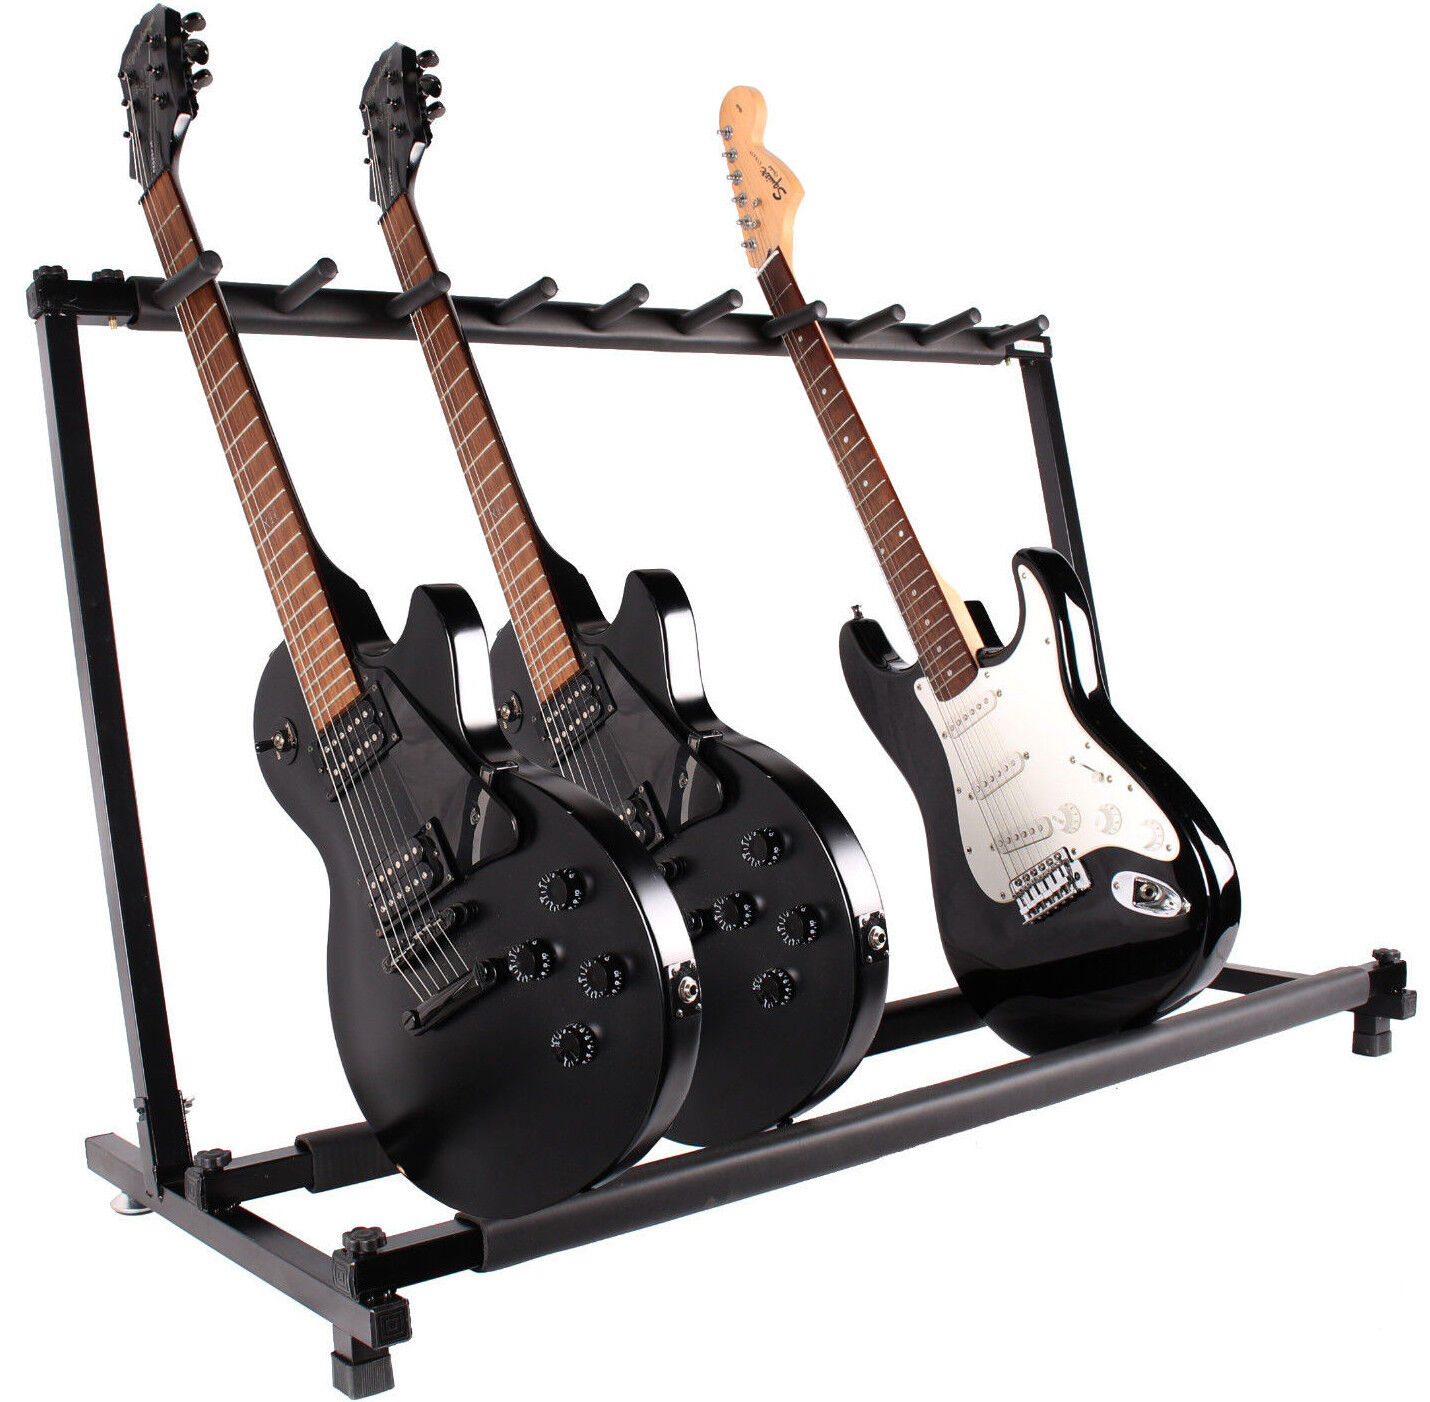 9 multiple guitar folding rack storage organizer electric. Black Bedroom Furniture Sets. Home Design Ideas